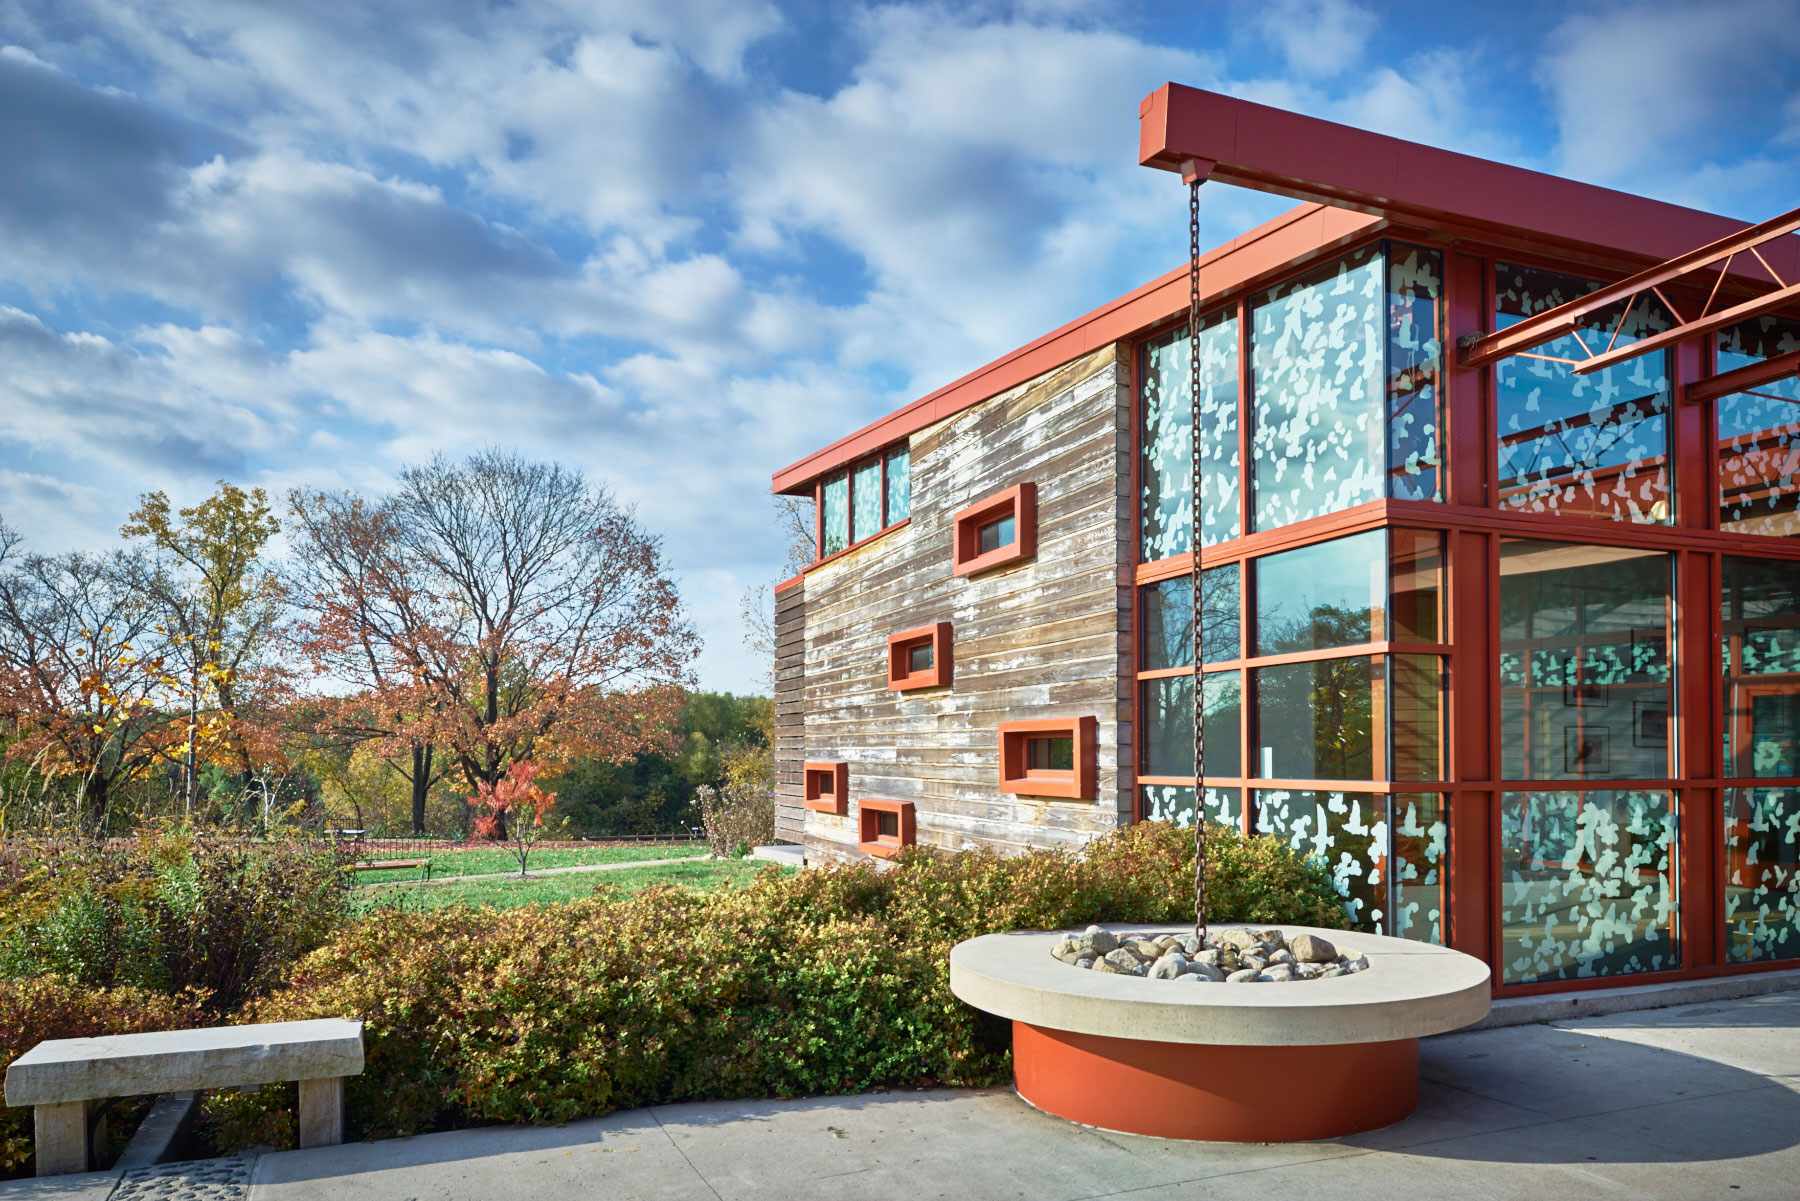 The Grange Insurance Audubon Center designed by Design Group is an architectural treasure. It is located on a former brownfield in the Whittier Peninsula, merely 1 mile from downtown Columbus.